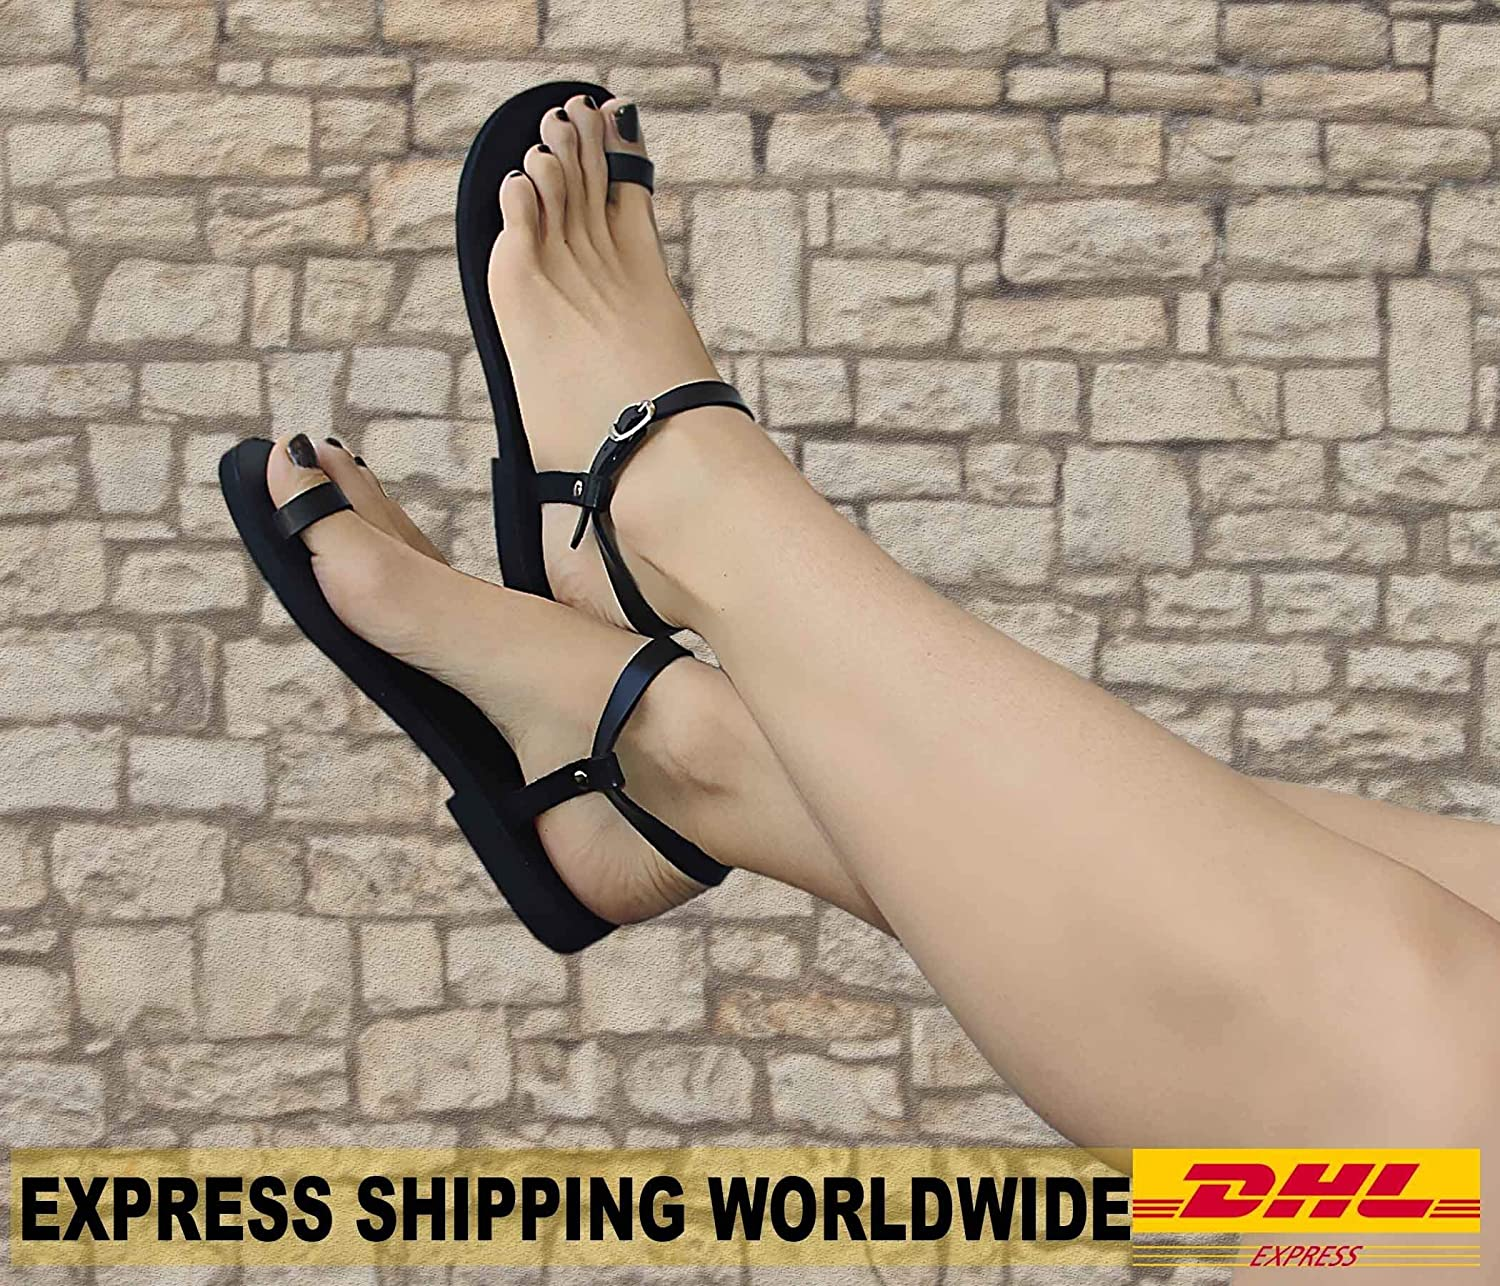 EXPEDITED SHIPPING Barefoot Sandals, Toe Ring Sandals, Leather Sandals, Ankle Strap Sandals, Black Gladiator Sandals - DREAM